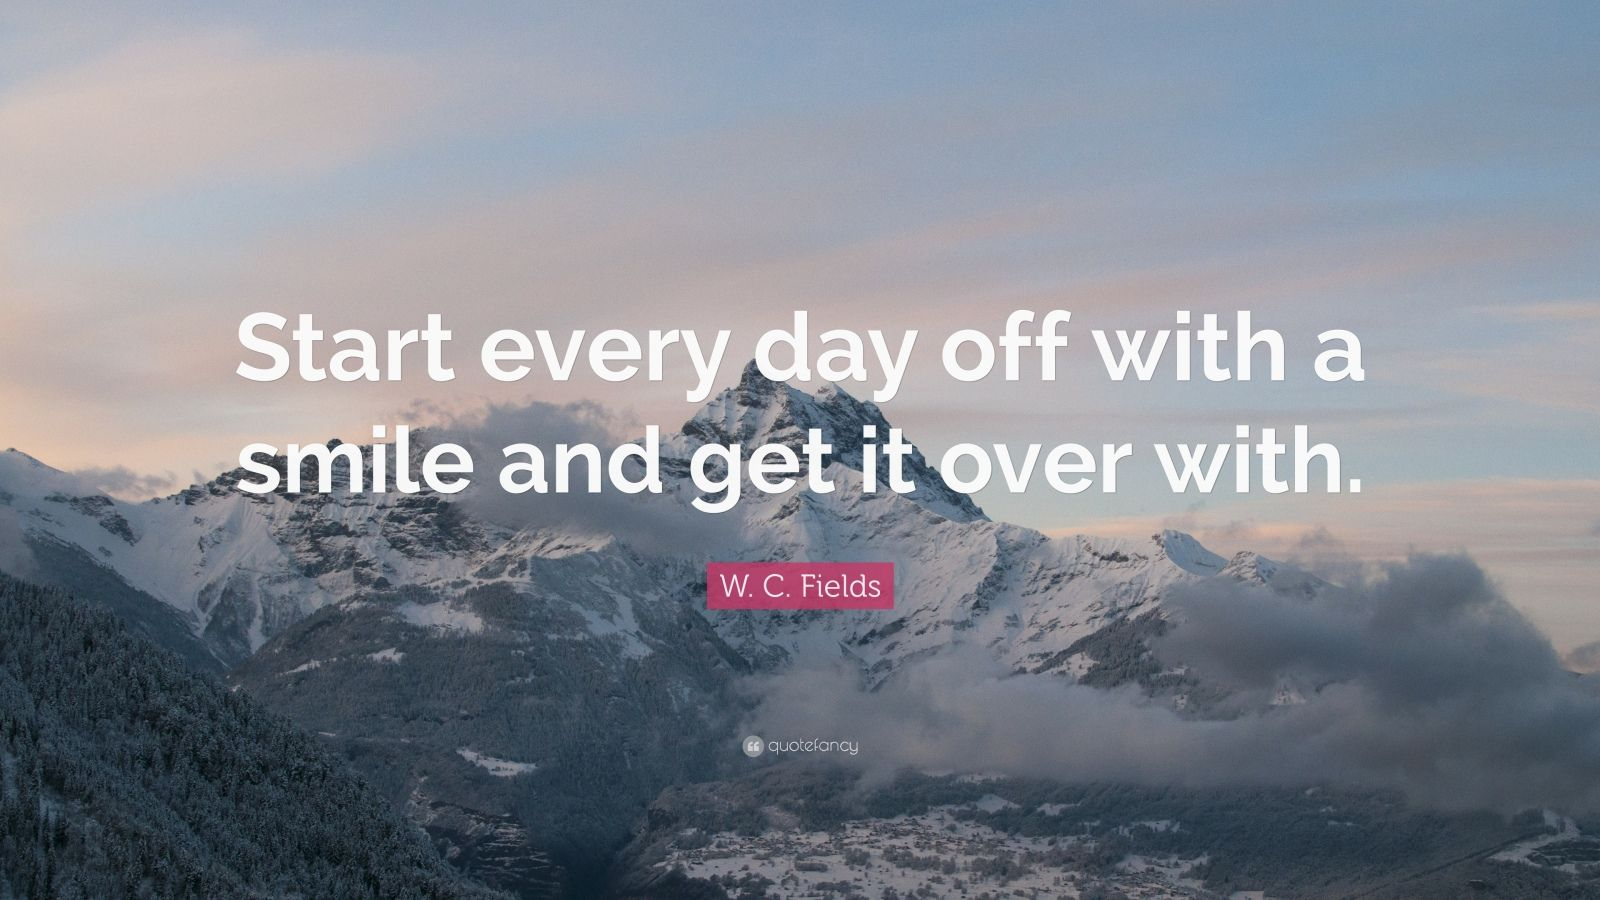 """W. C. Fields Quote: """"Start every day off with a smile and get it over with."""""""